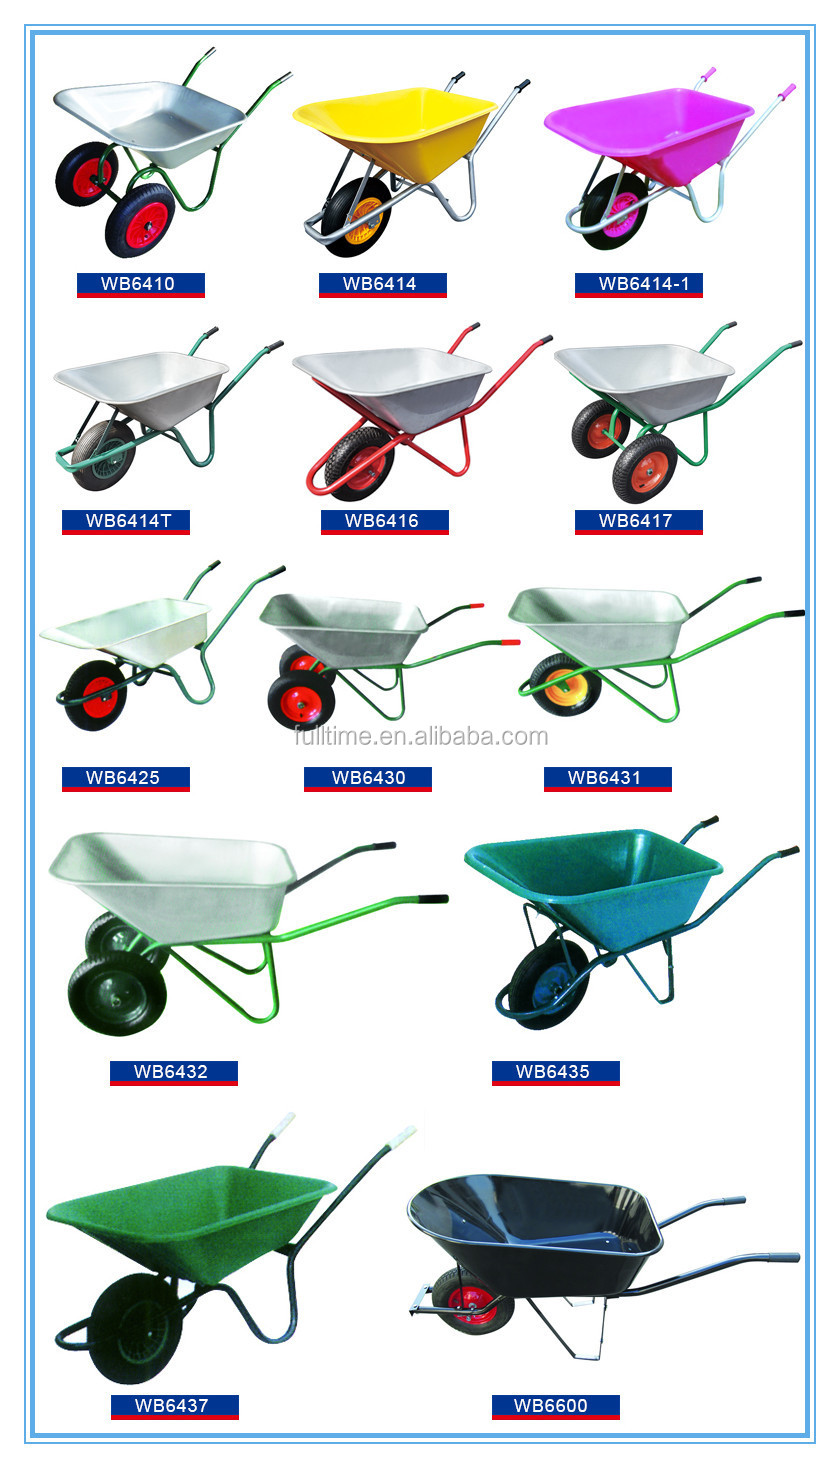 Building Construction Wheel Barrow WB6414T Prices